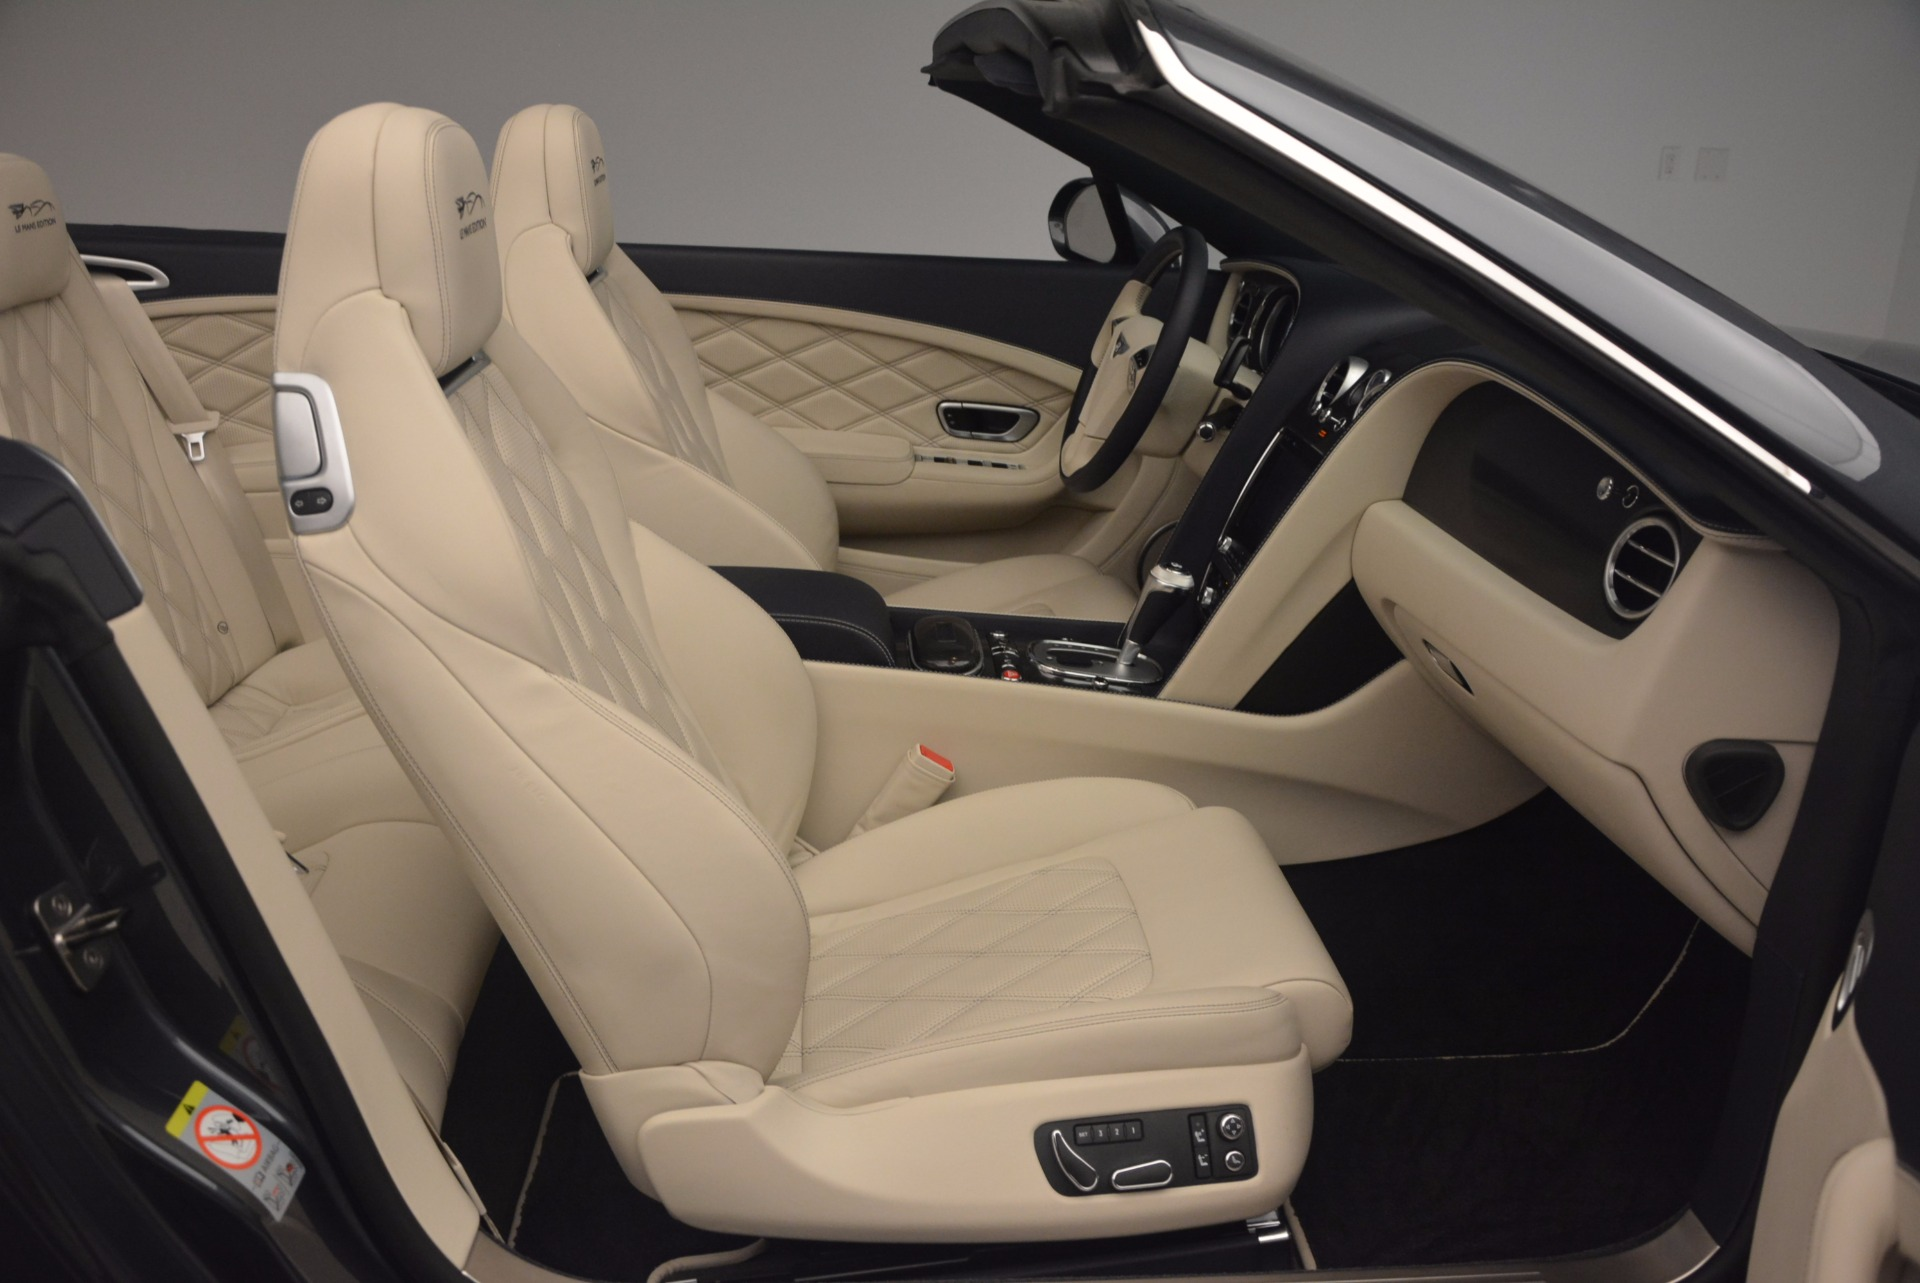 Used 2013 Bentley Continental GT V8 Le Mans Edition, 1 of 48 For Sale In Greenwich, CT 1288_p49